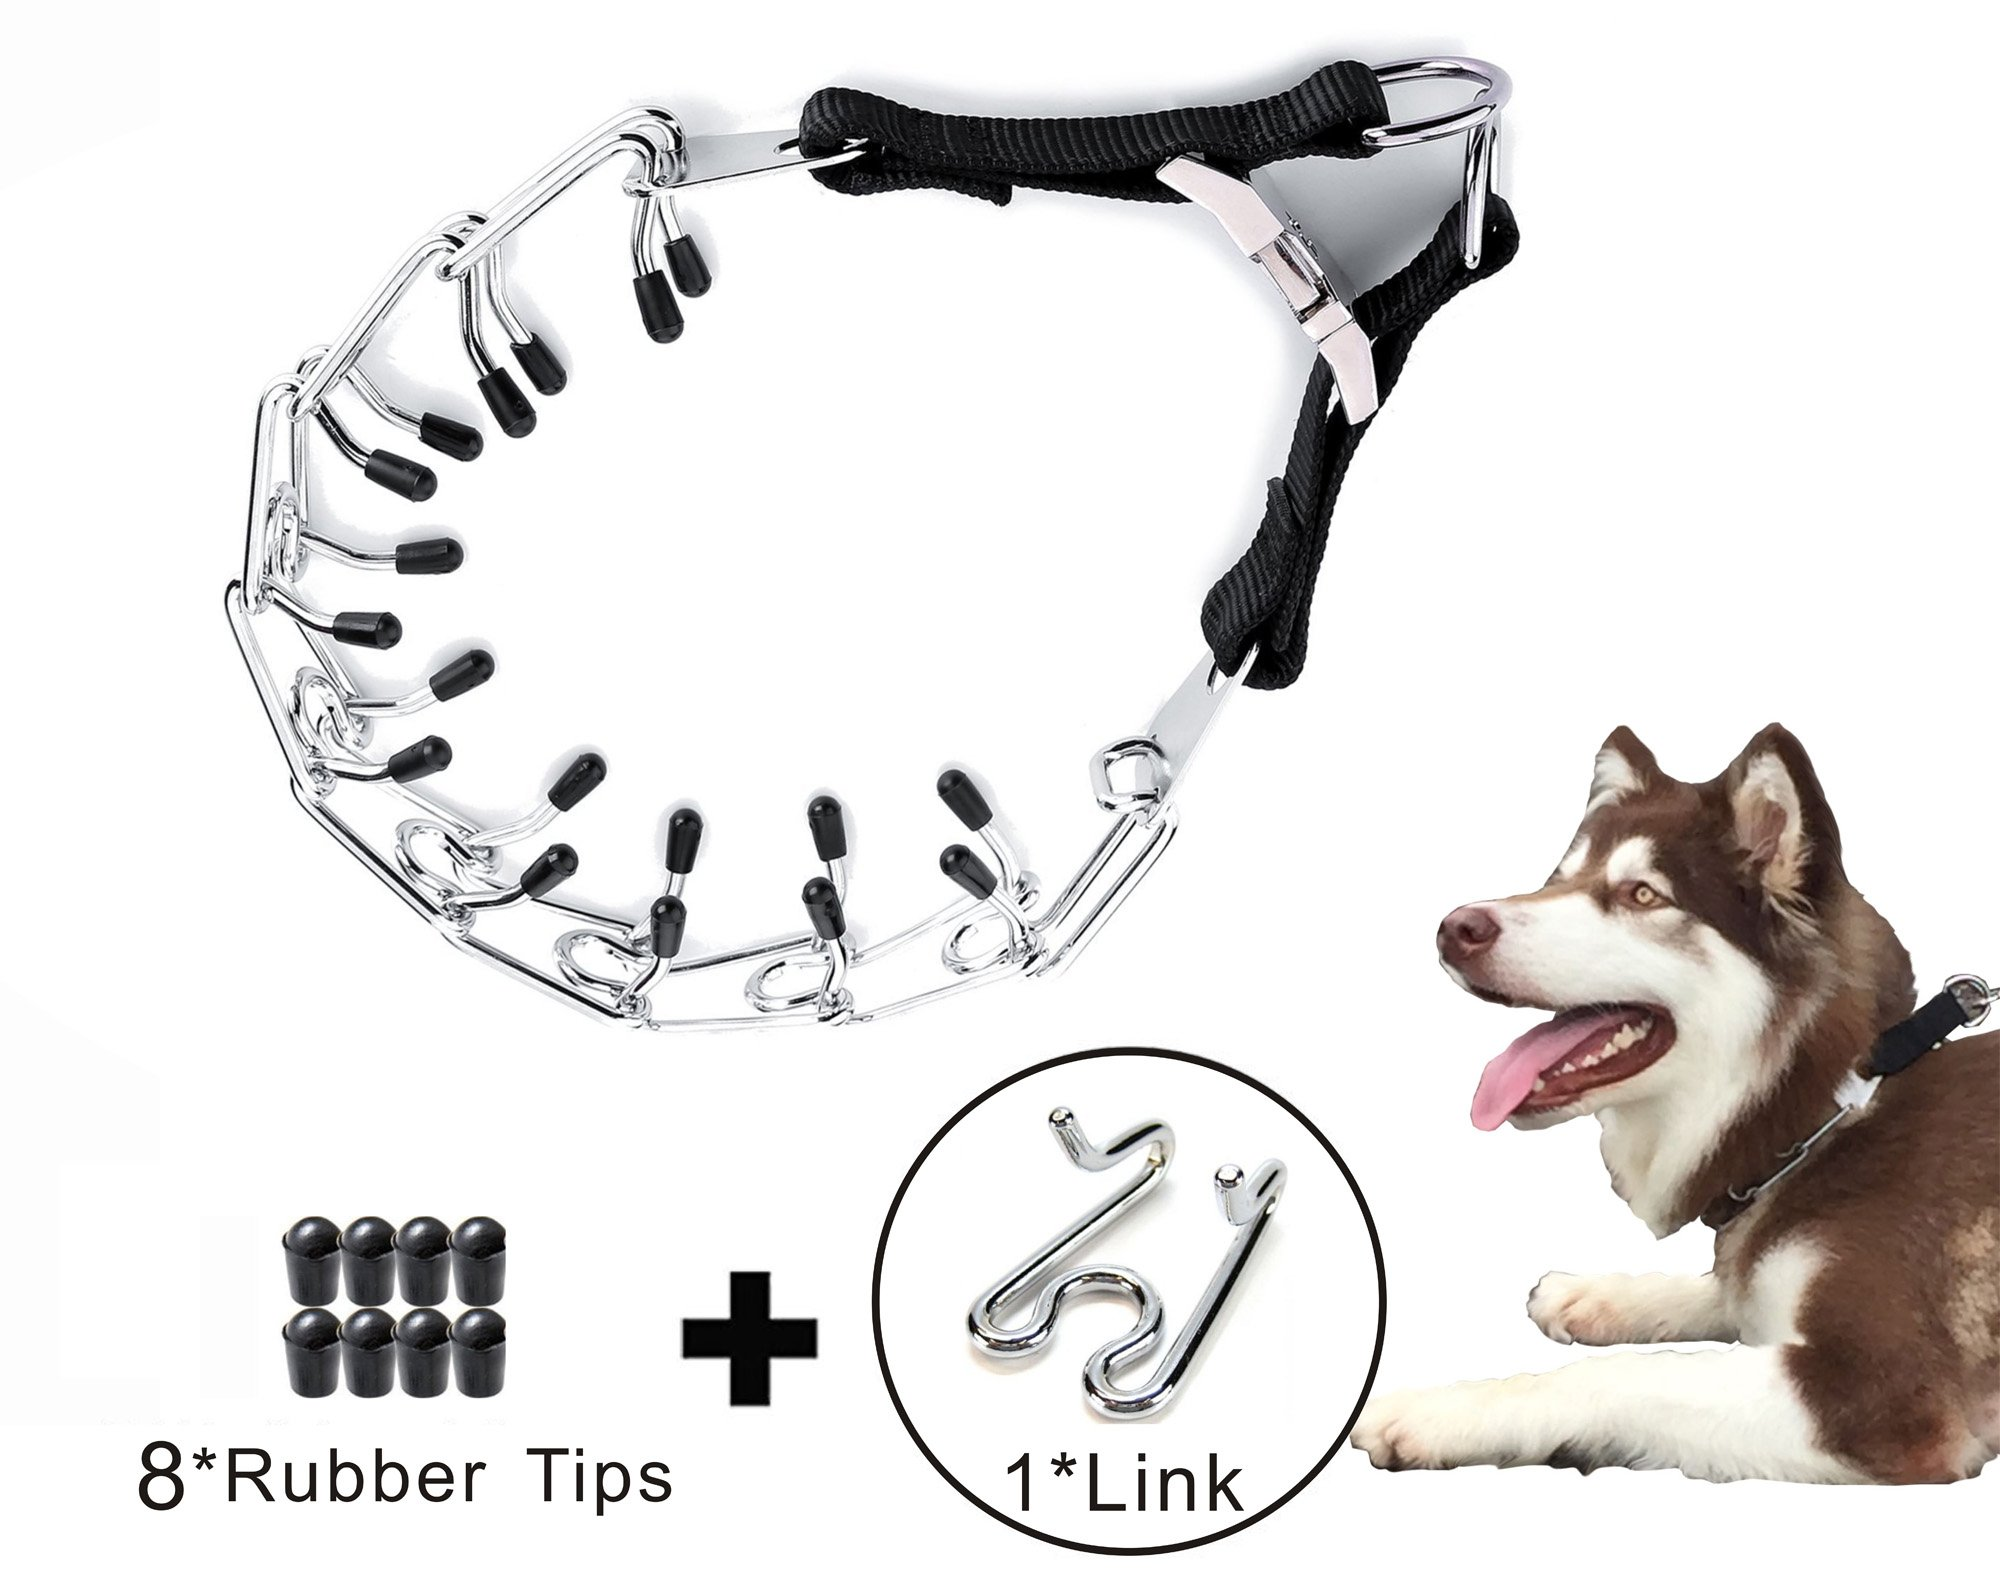 Partner Dog Prong Training Collar with Quick Release Snap Buckle and Rubber Caps Plated Adjustable Training Dog Collar for Medium and Large Dogs FREE EXTRA 1 LINKS AND 8 RUBBER CAPS(23.6 inches)